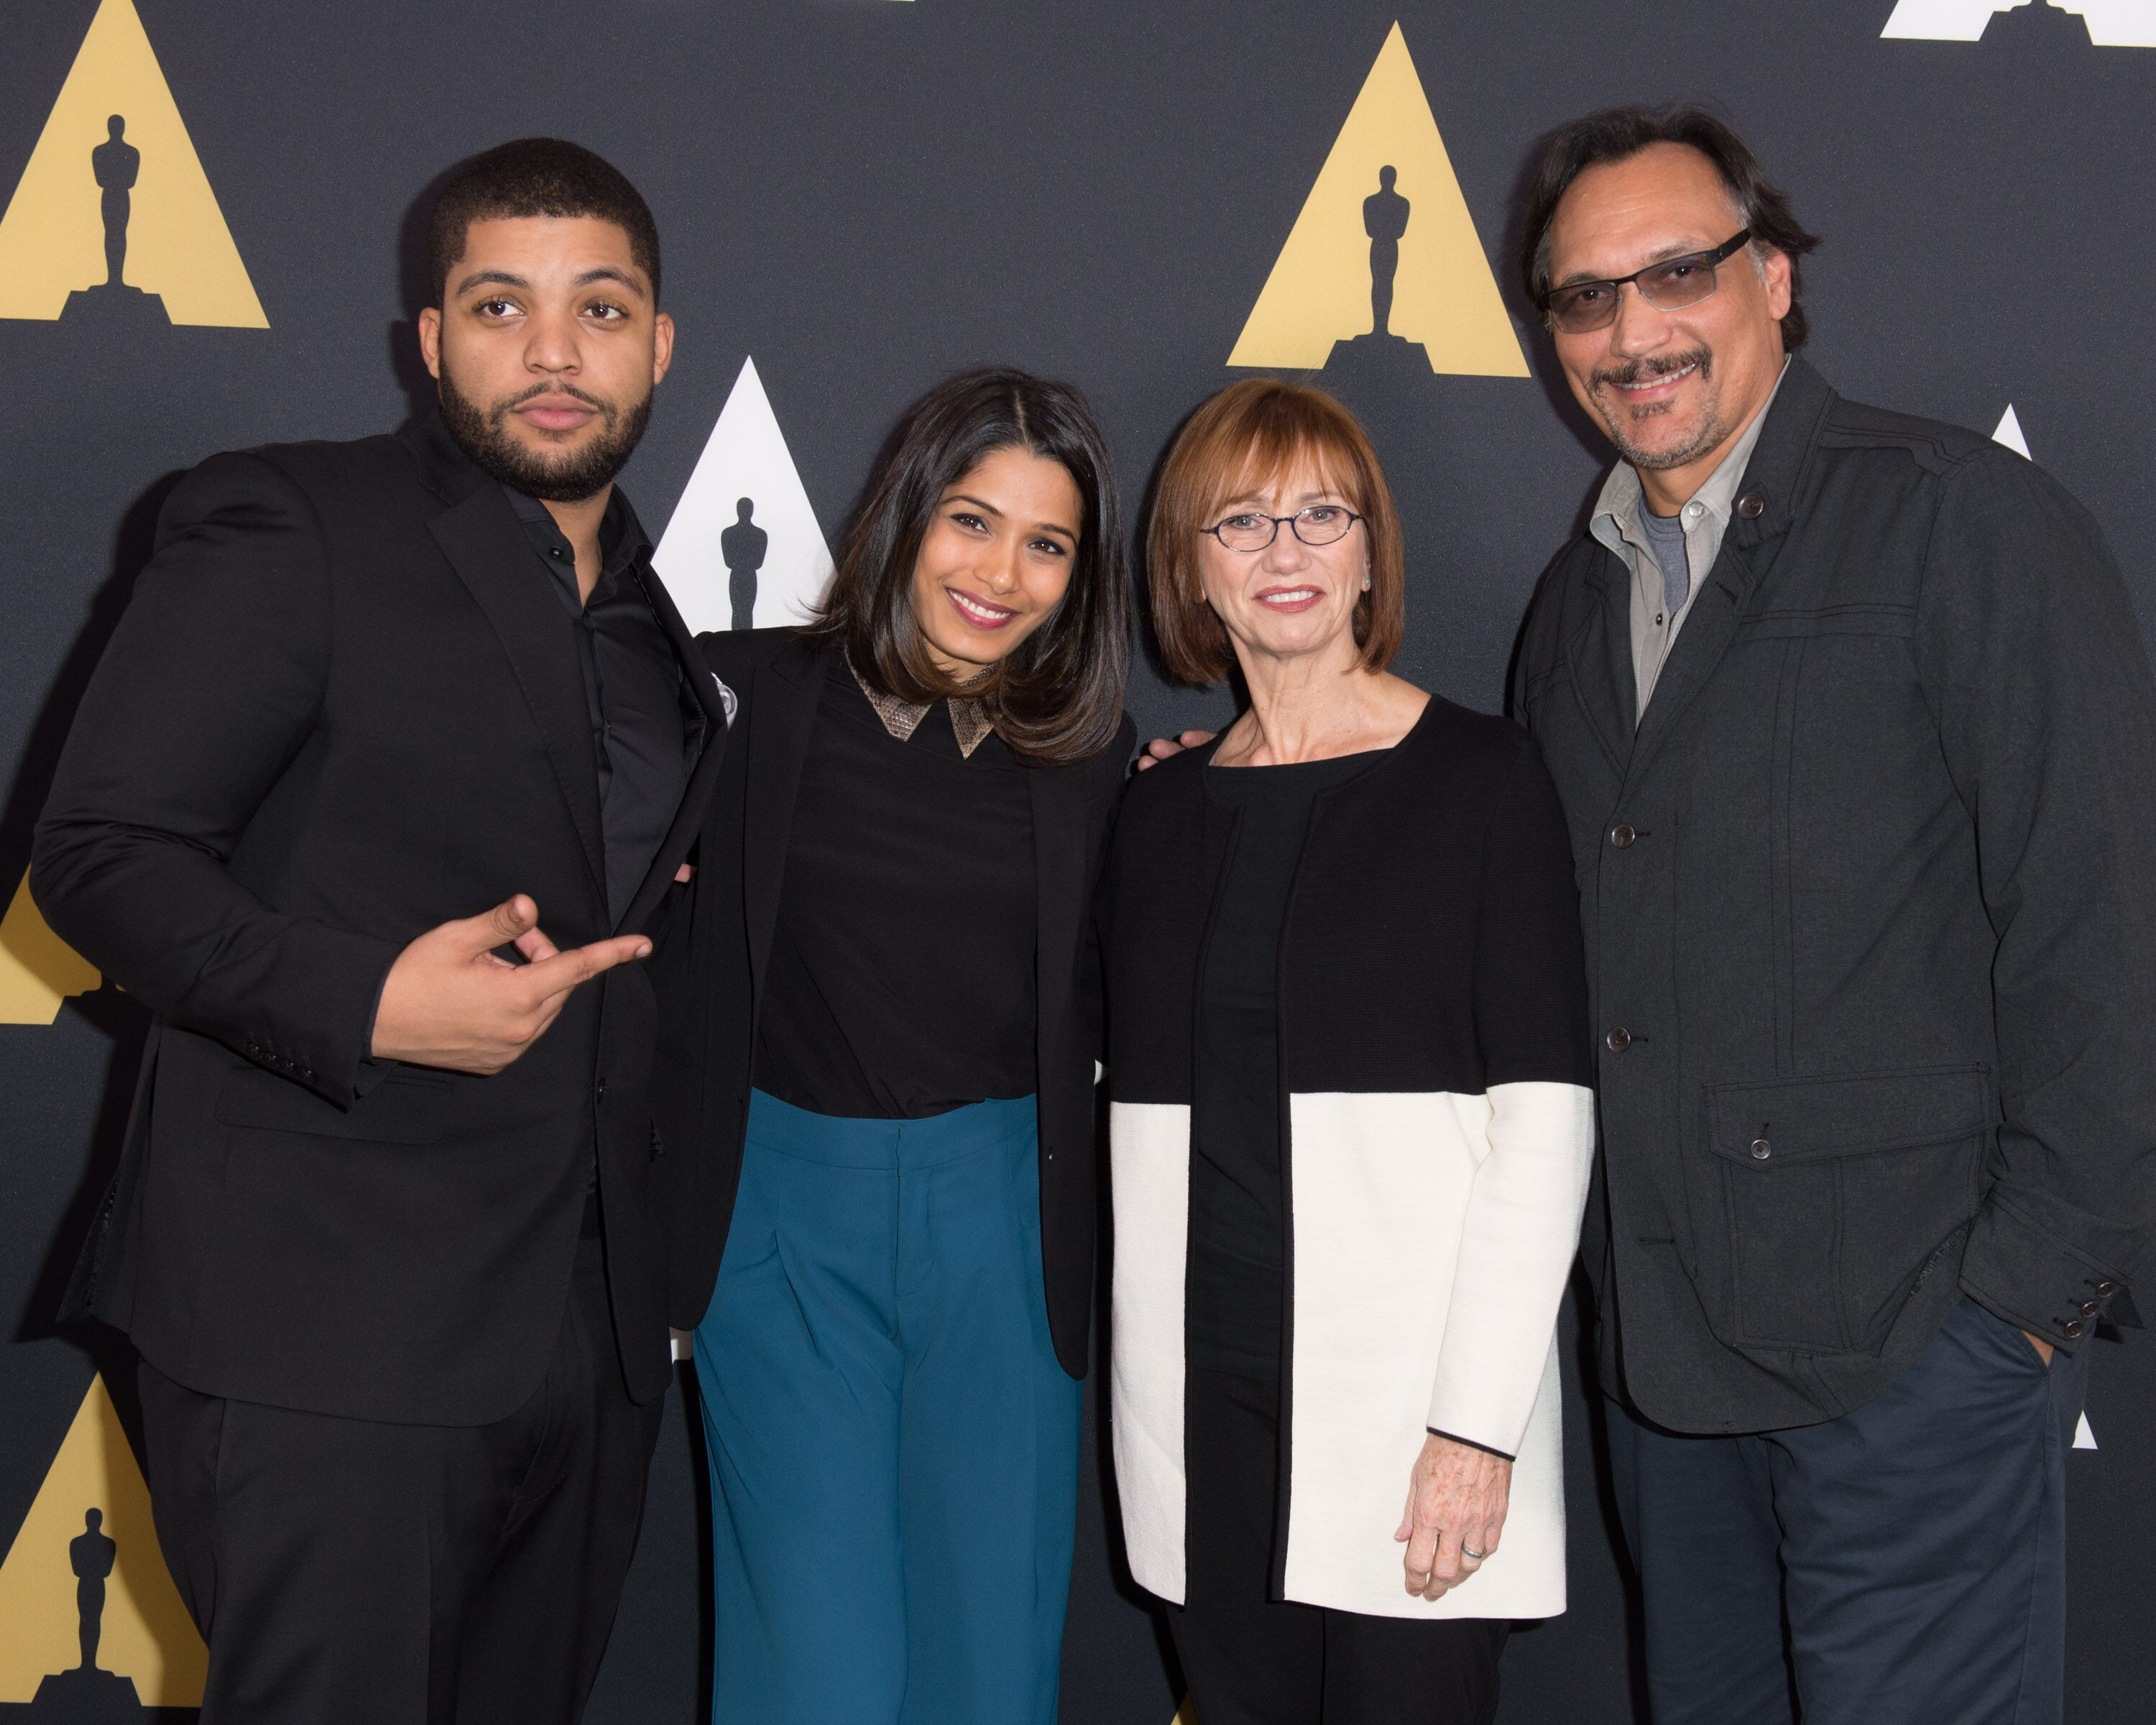 Pictured (left to right): O'Shea Jackson Jr., Freida Pinto, Kathy Baker and Jimmy Smits.